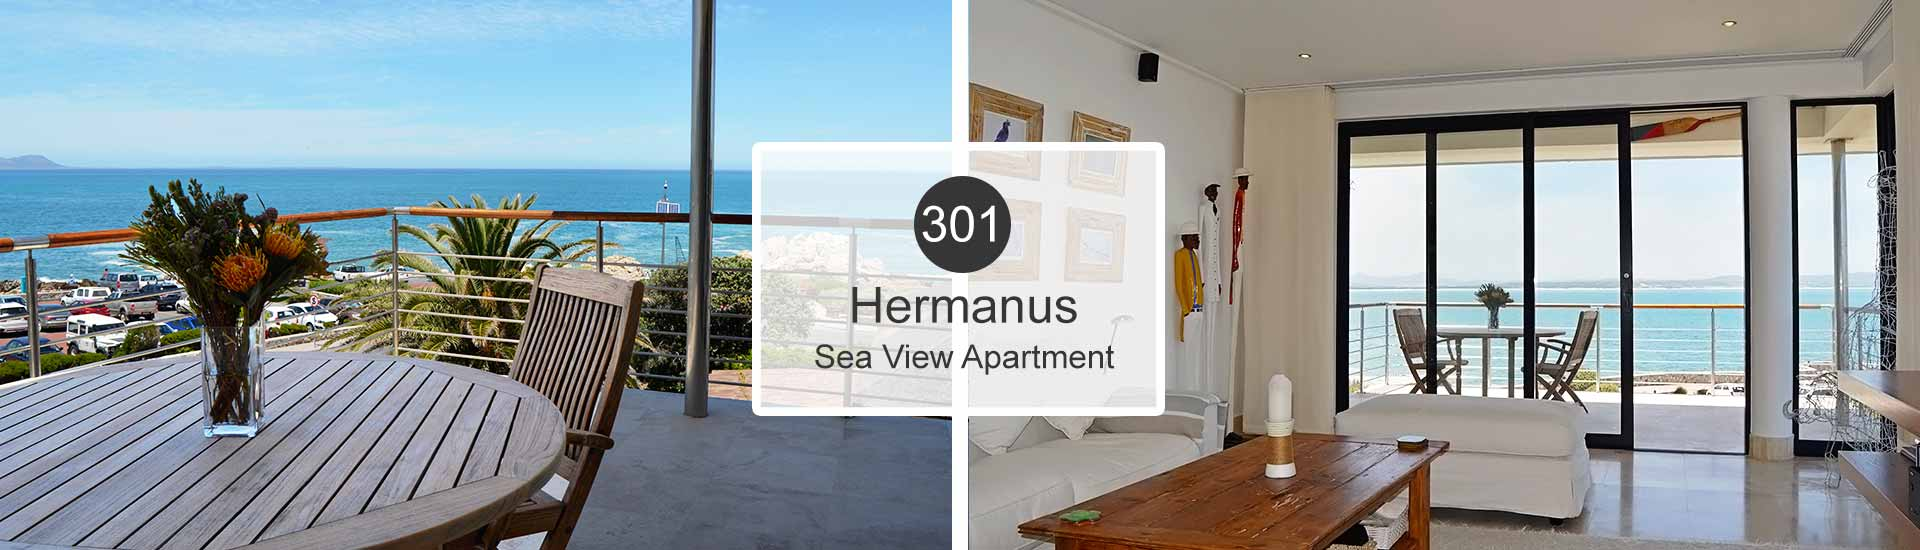 Hermanus Self Catering Accommodation - Sea View Apartment